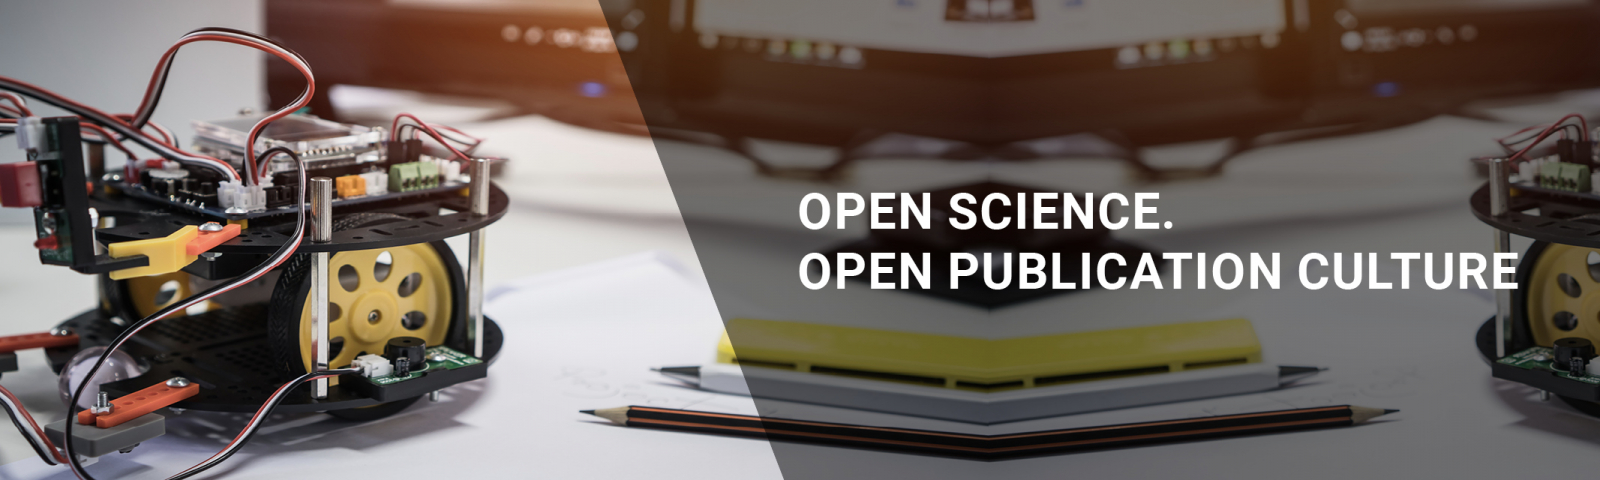 "A little robot and the writing ""Open Science. Open Publication Culture"""